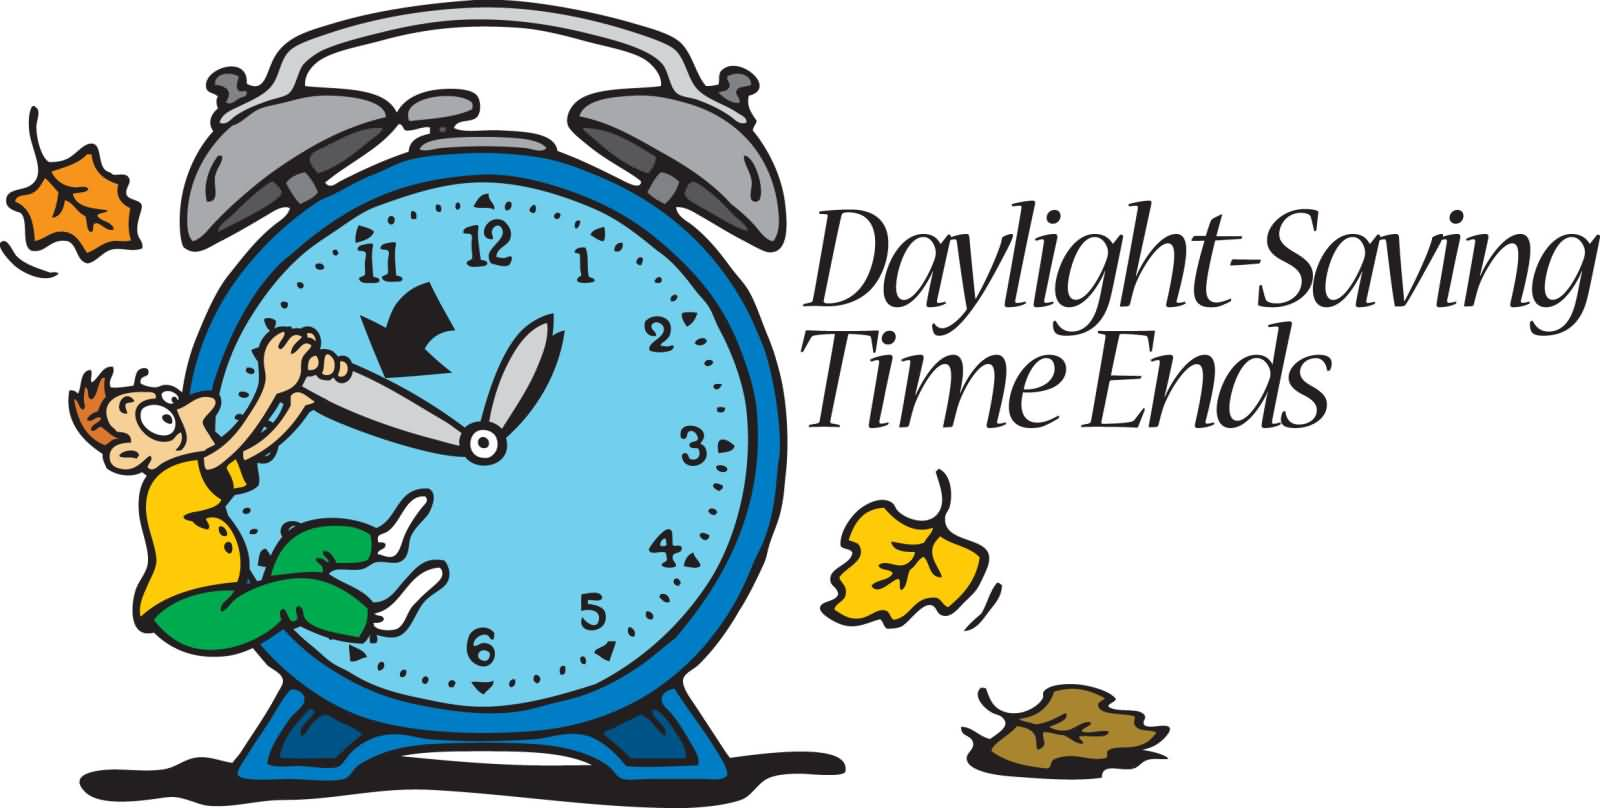 50 amazing daylight saving time ends wish pictures daylight savings clipart for march 11 daylight savings clip art religious free